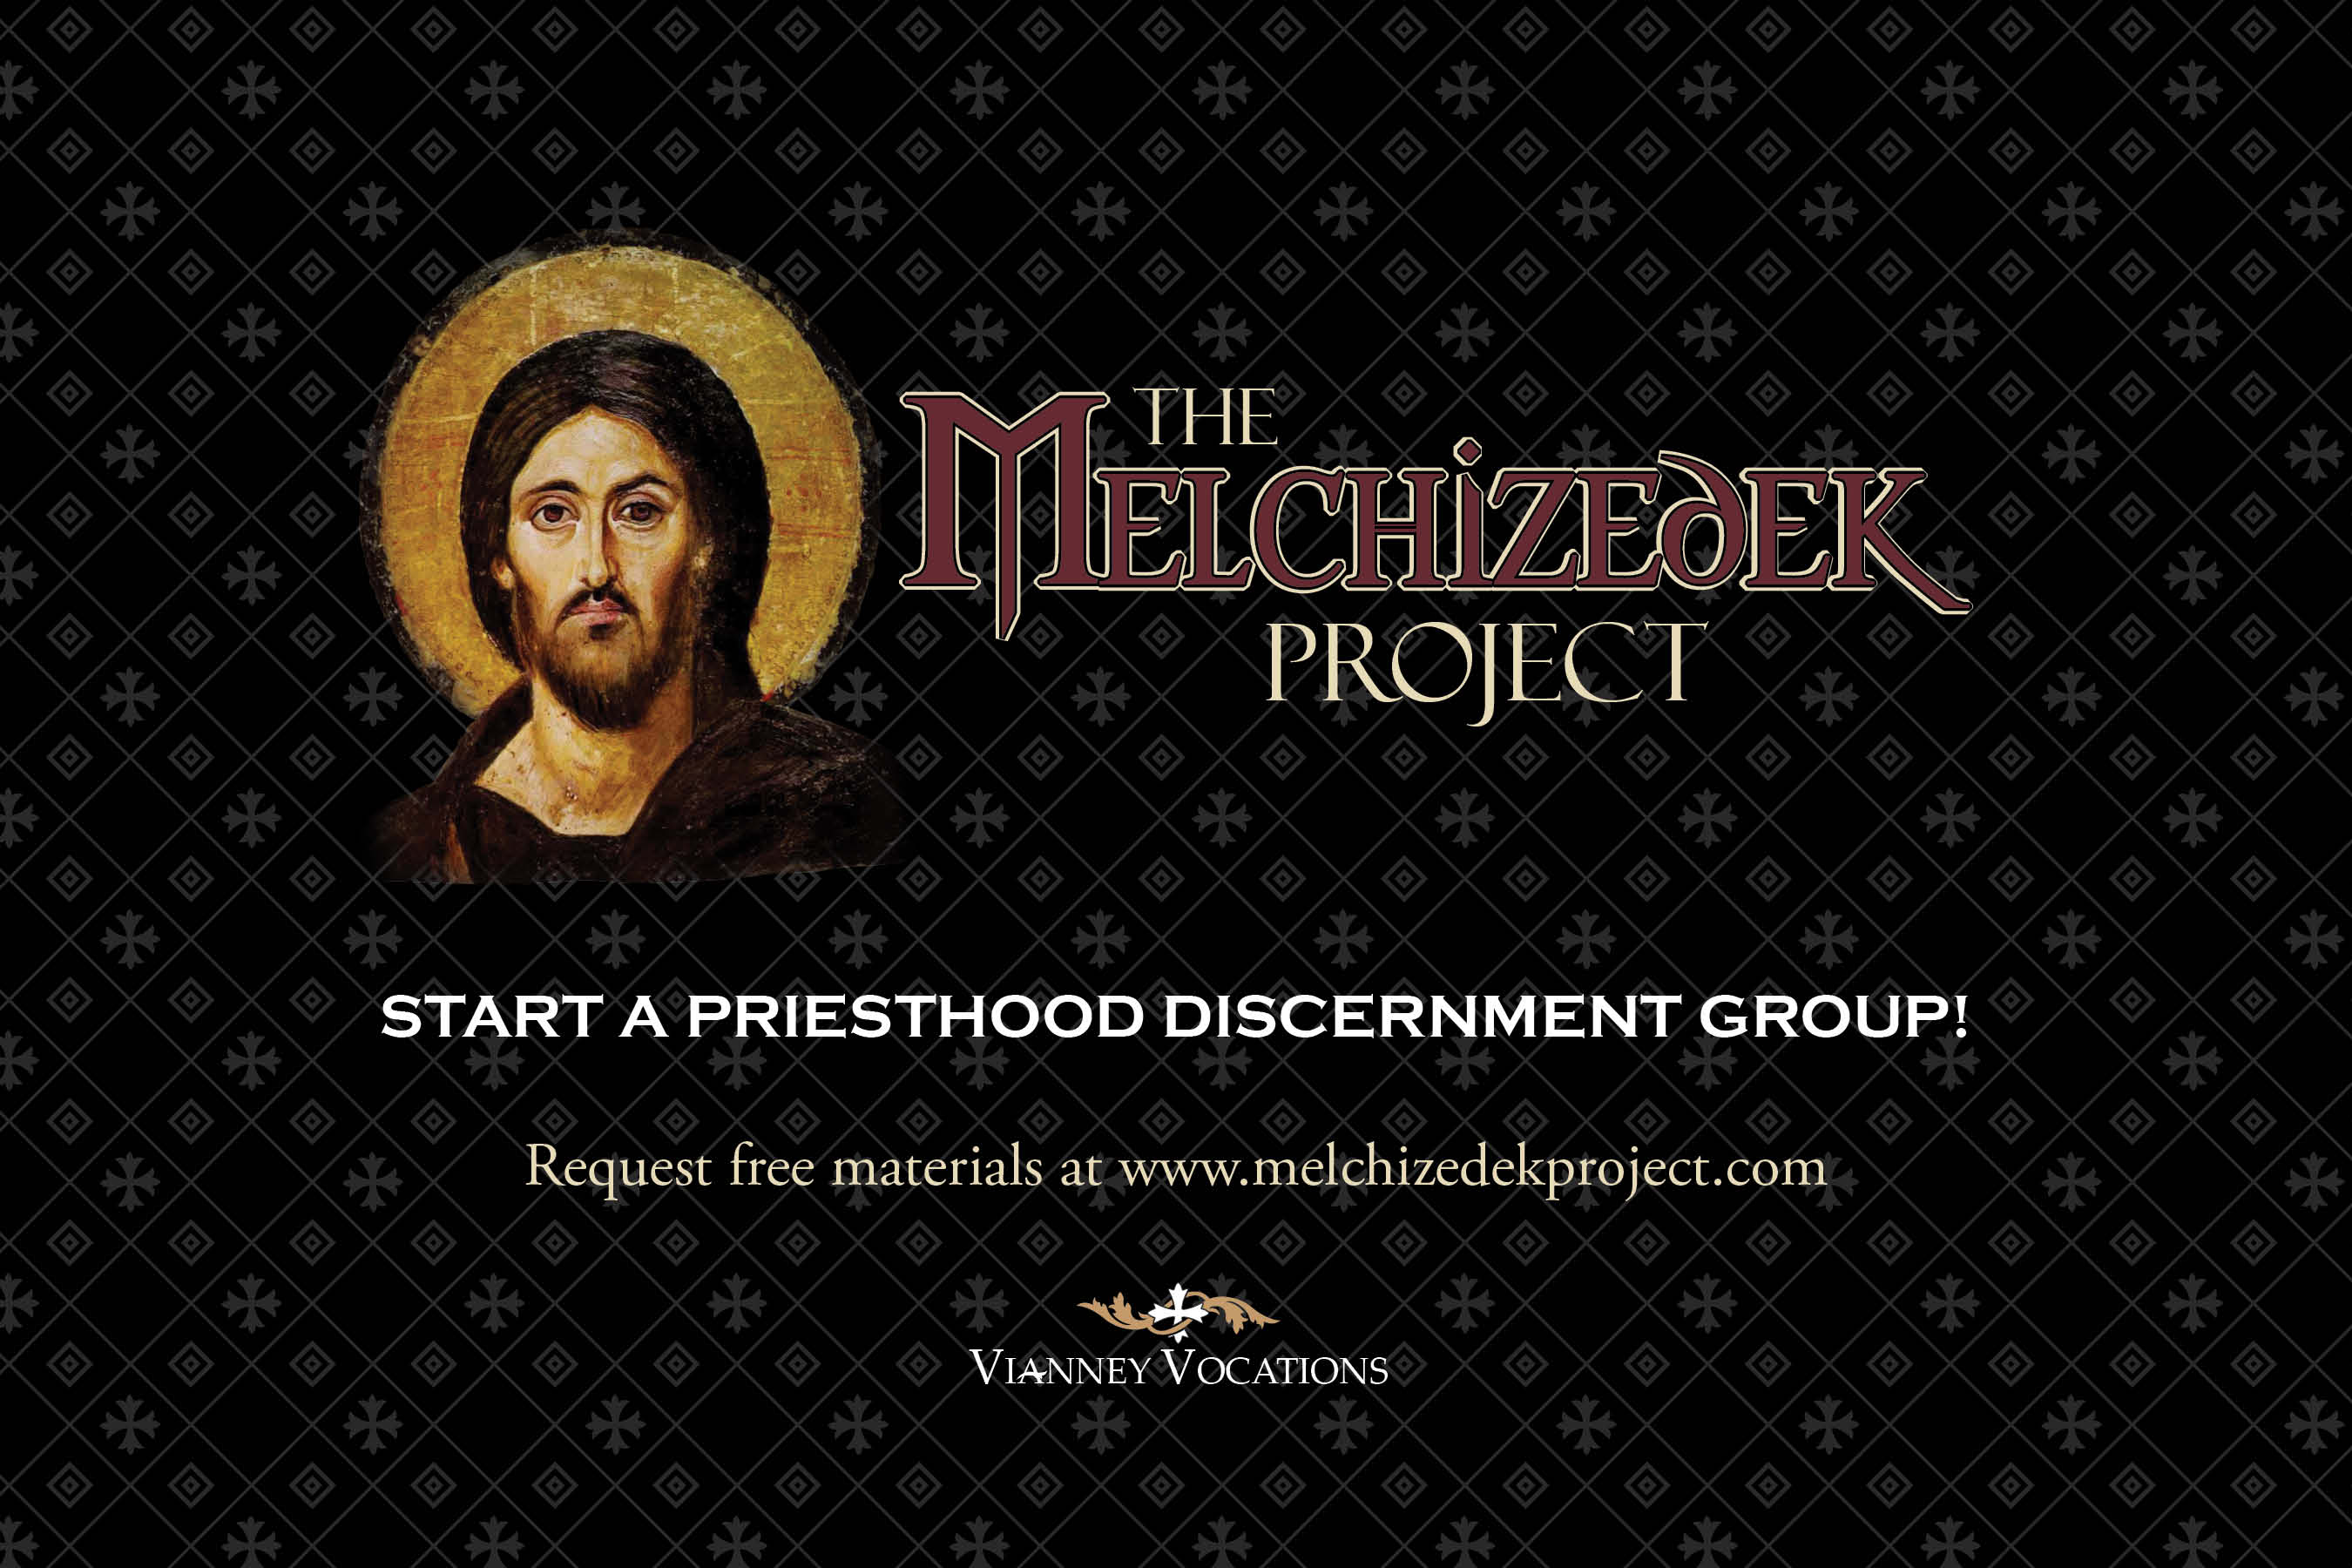 Melchizedek Project Free Resources for Discernment Groups Info Card